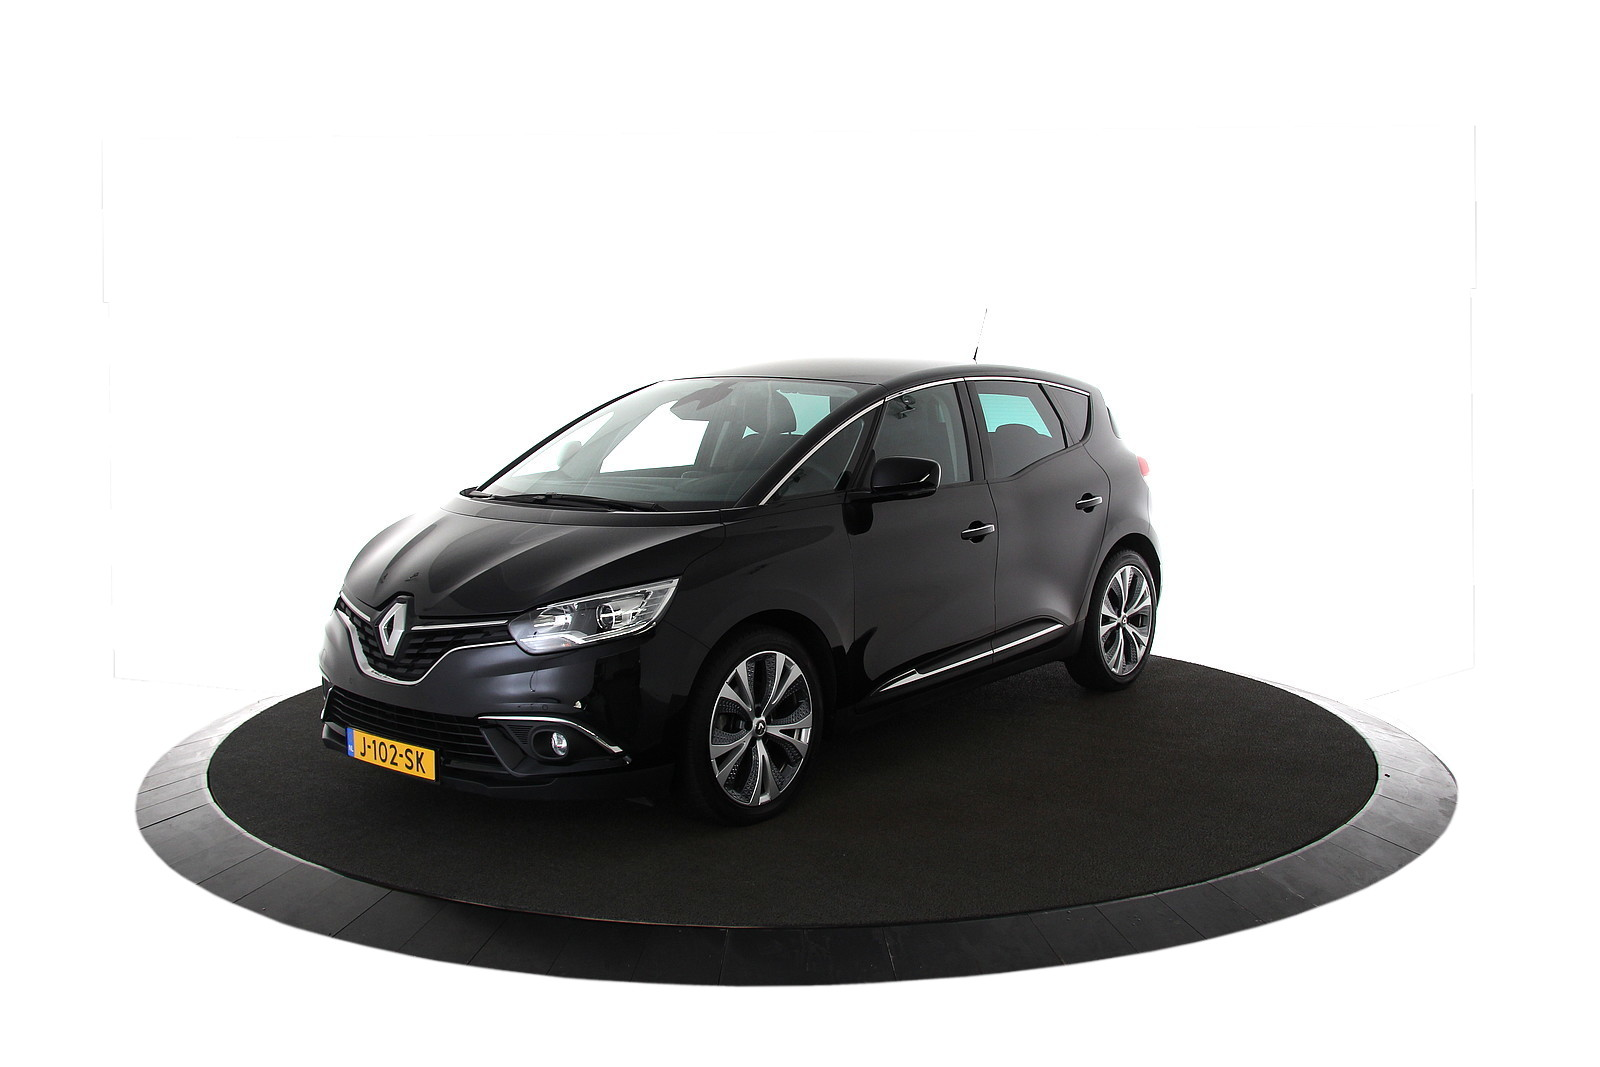 Renault Scénic 1.2 TCe Intens